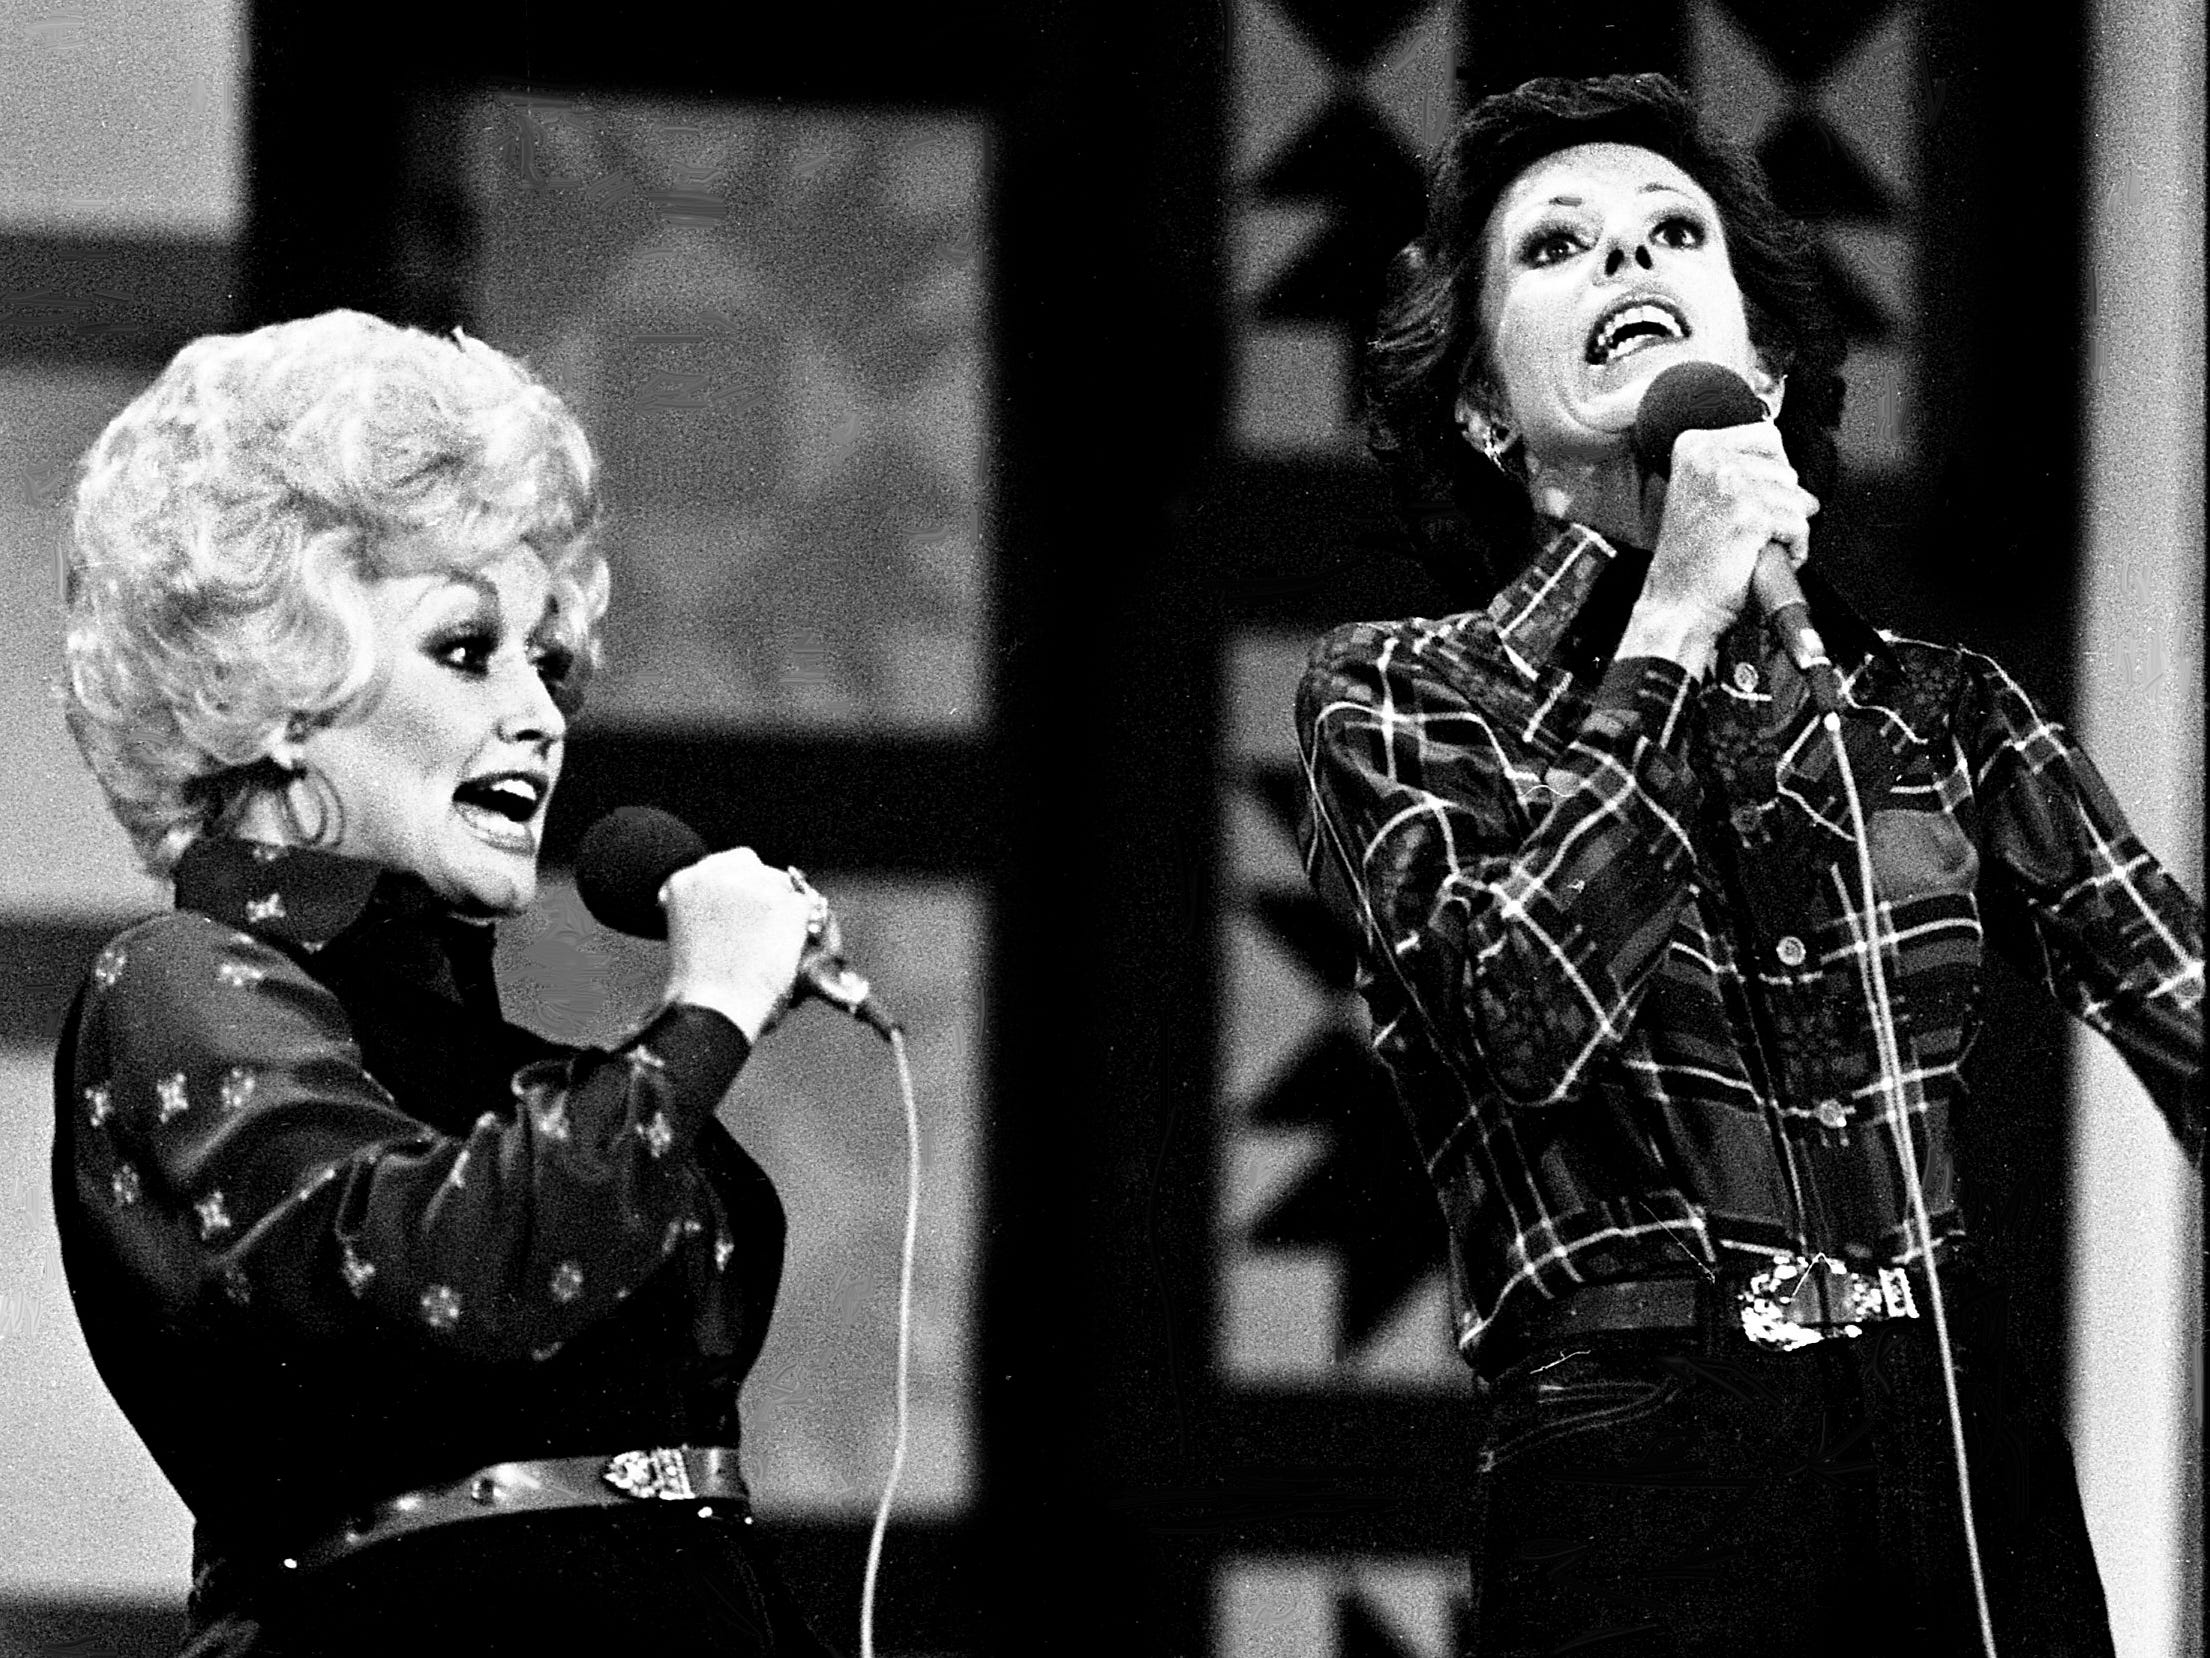 """After Carol Burnett, right, tells Dolly Parton that """"No one picks like a Nashville picker,"""" it turned into a hilarious musical number skit during the taping of the """"Dolly and Carol in Nashville"""" television special before a packed audience at the Grand Ole Opry House Jan. 10, 1979."""